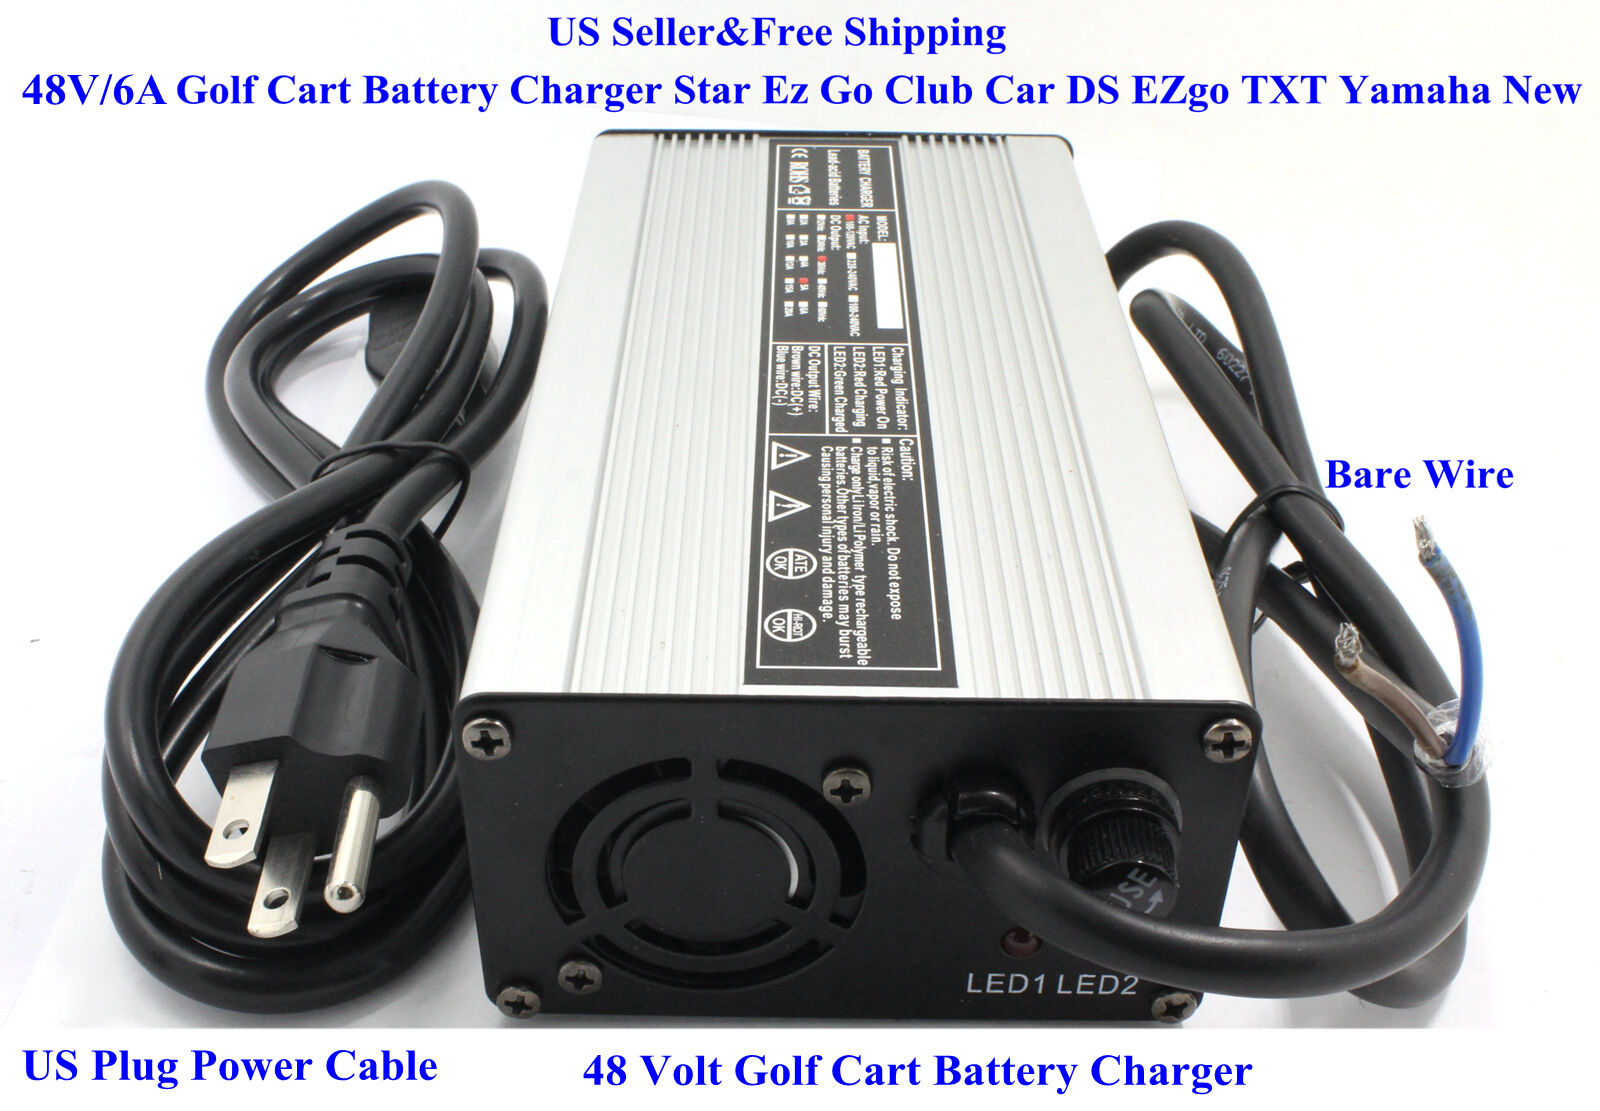 New 48 Volt Golf Cart Battery Charger 6a Star Ez Go Club